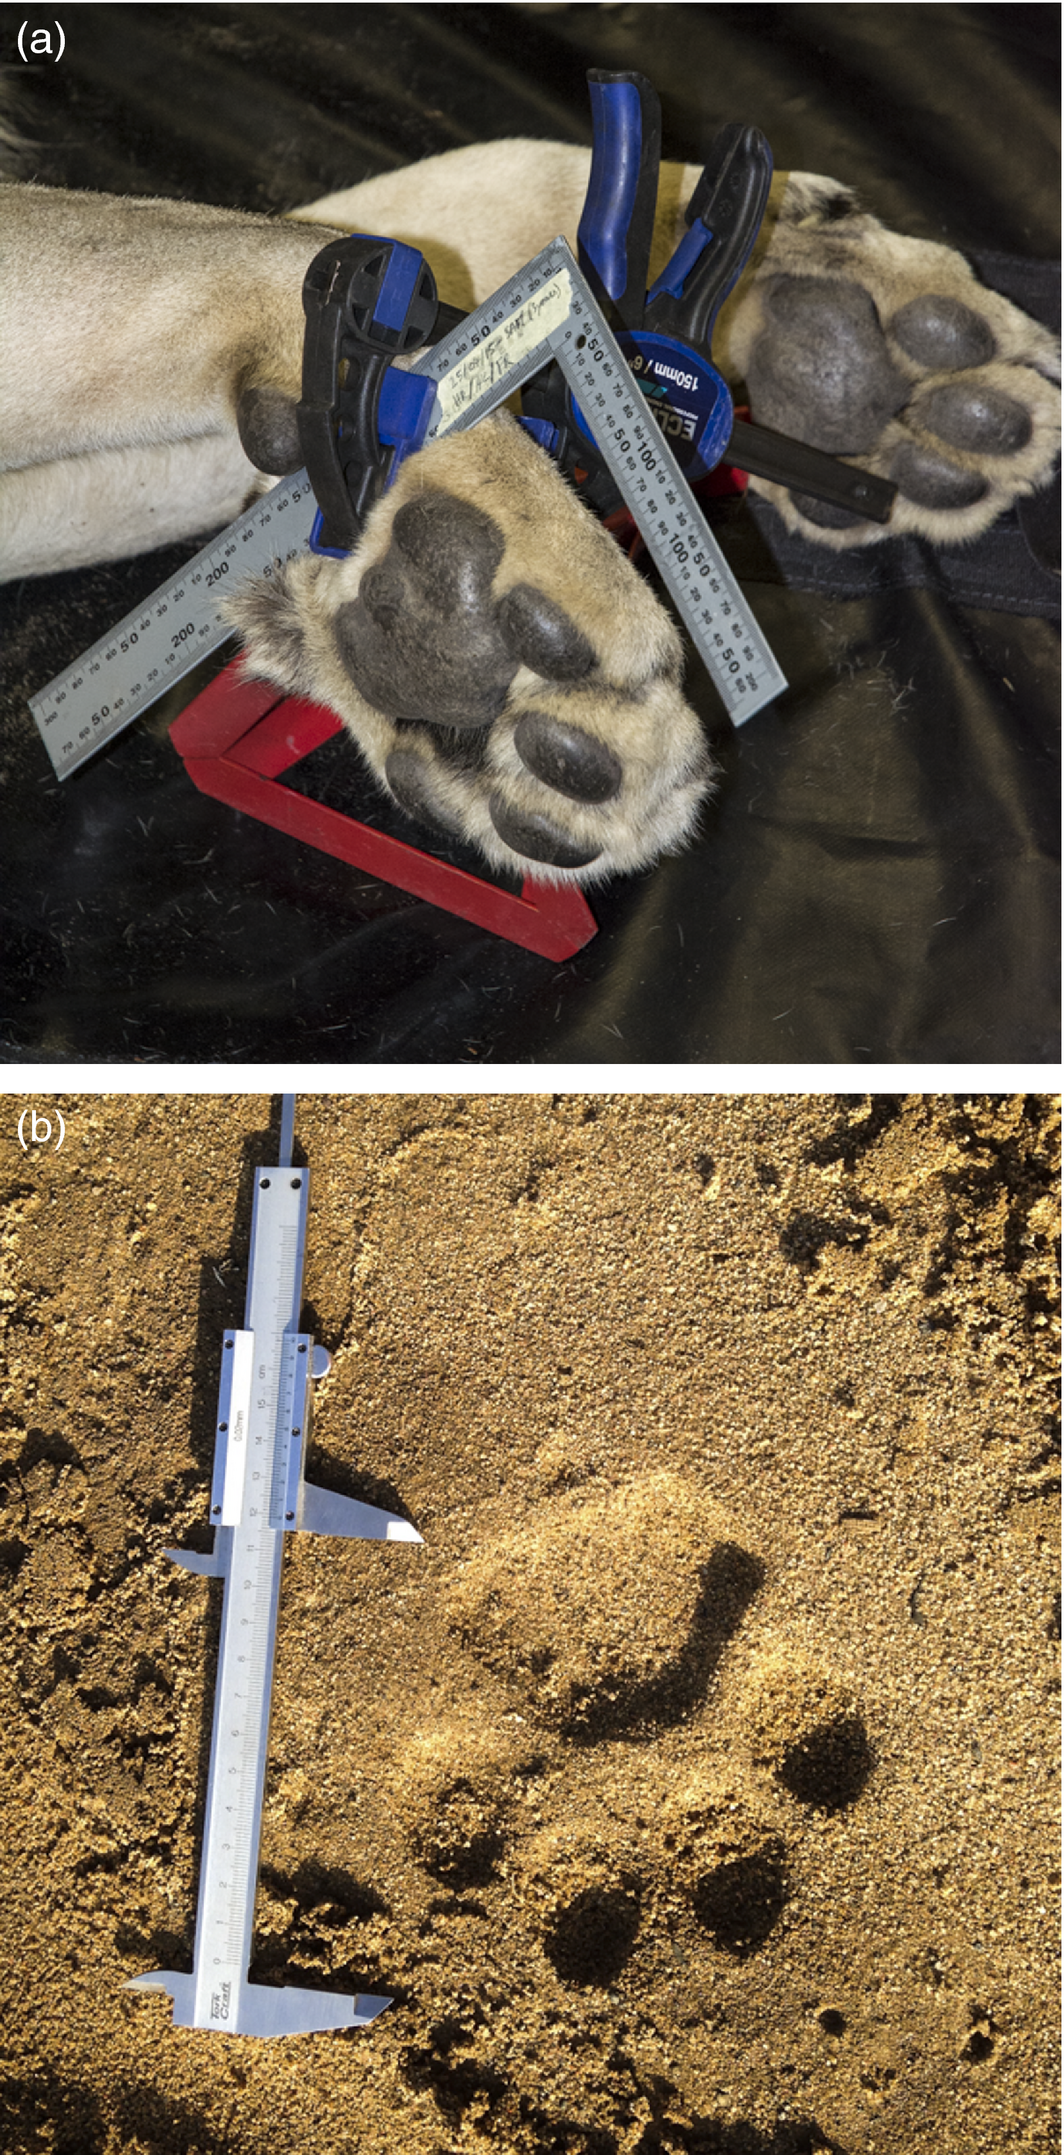 Paw and track sampling. (a) During the paw sampling, the motionless paw is positioned on a stand with a clamp holding the ruler and orientating the paw upward. (b) A vernier calliper was used for the direct measurements of paws and tracks. From  Marchal et al. (2016)